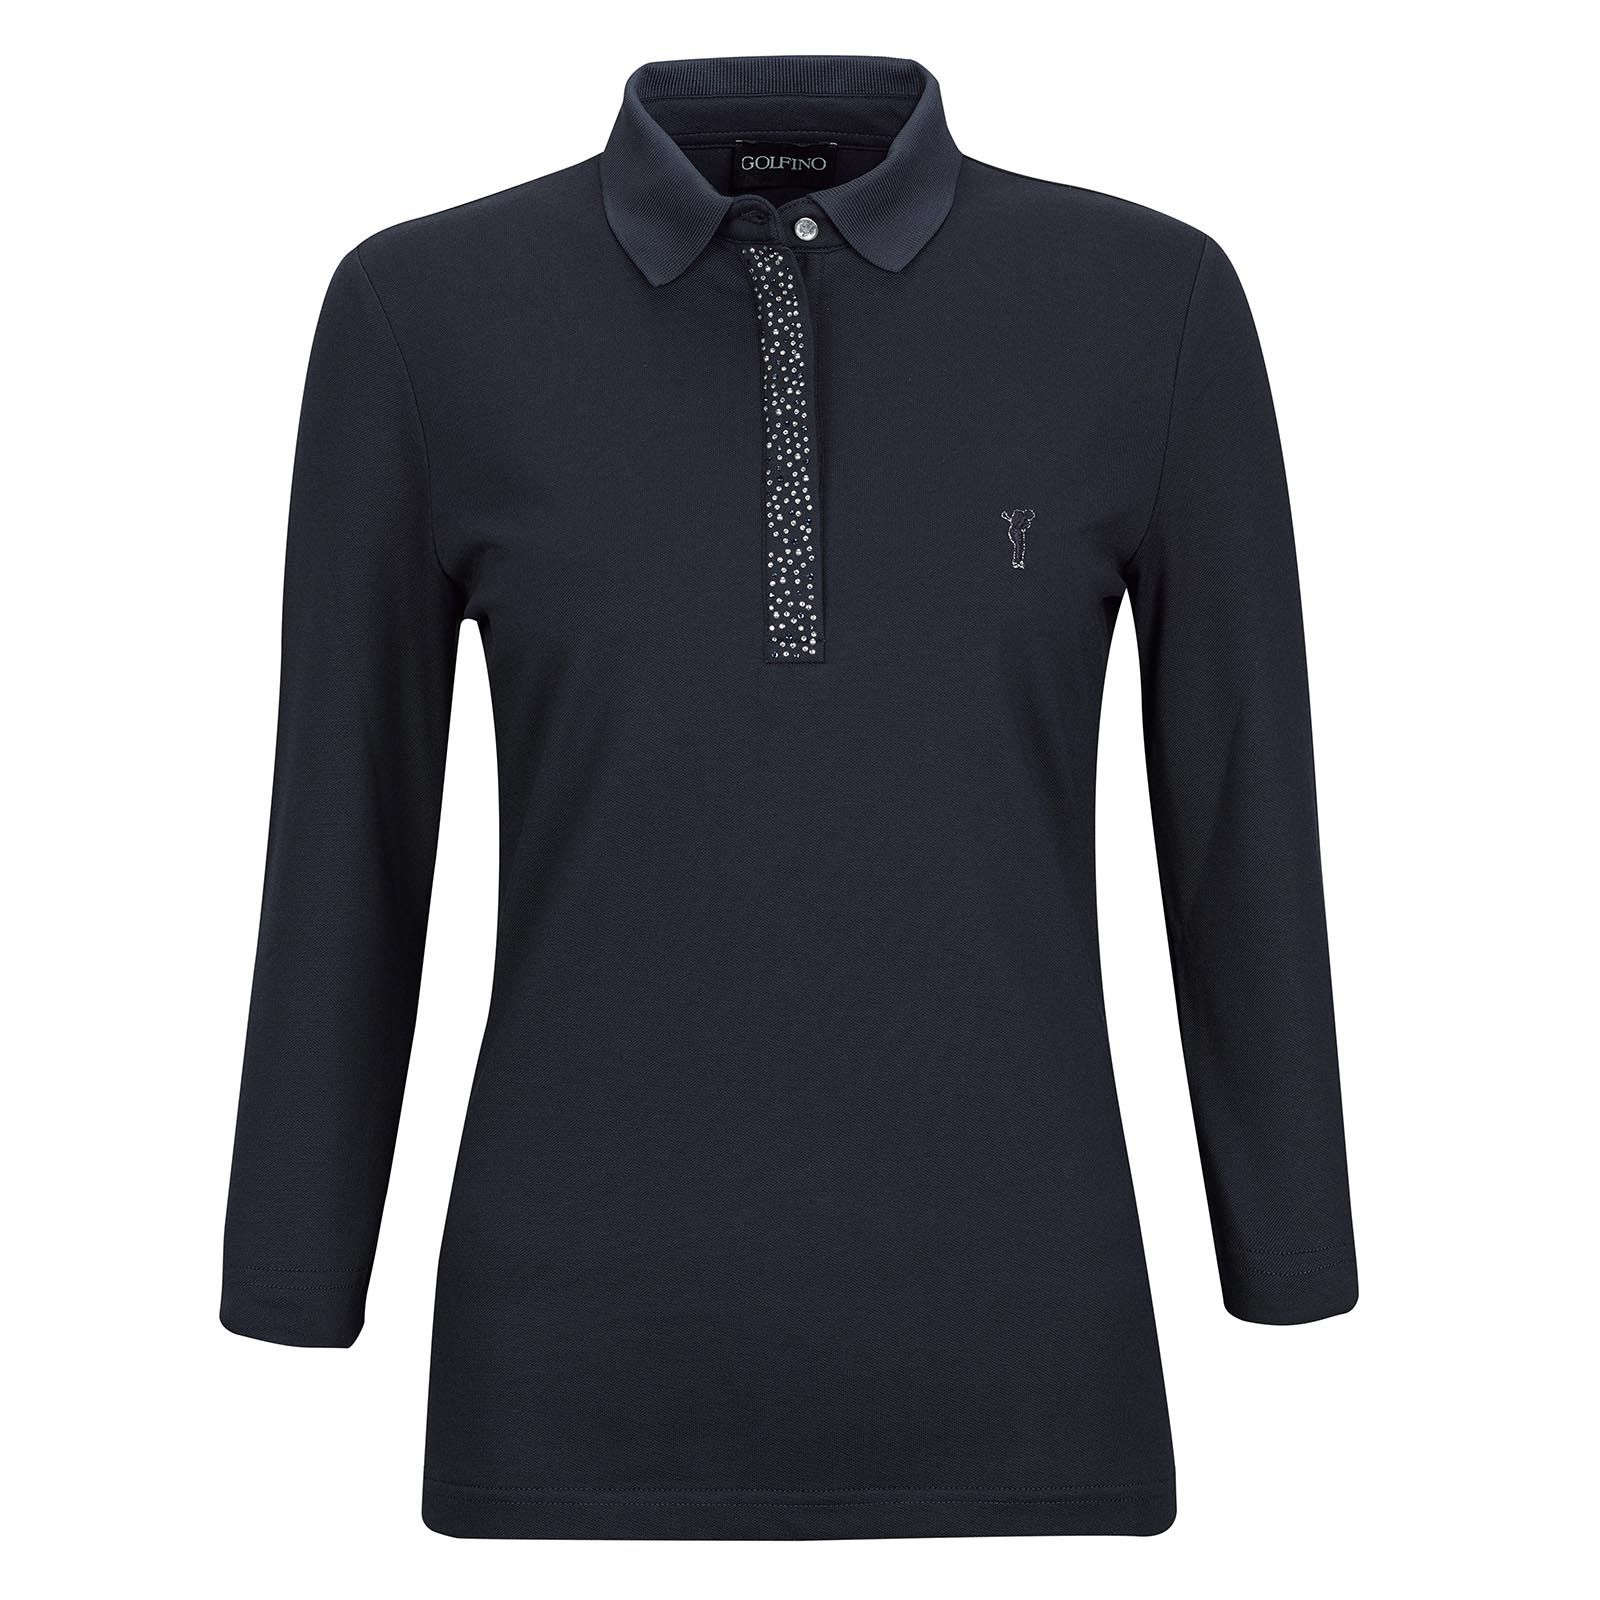 a0e803d5 This polo shirt is made of material that is impenetrable to UV rays. The  glittery stitched logo on the chest and above all the button band stand  out, ...